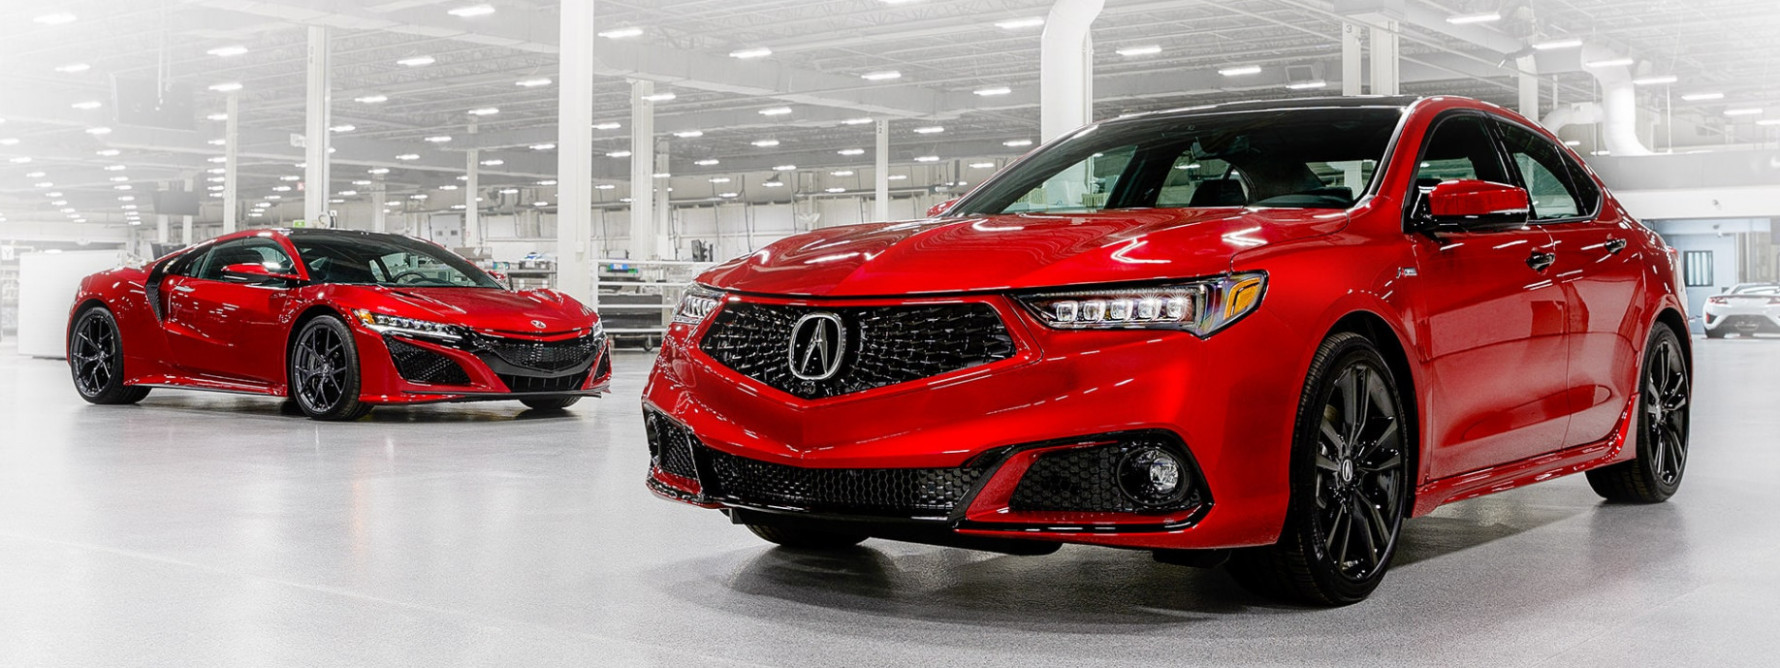 New 6 Acura TLX PMC Edition - 2020 acura official site